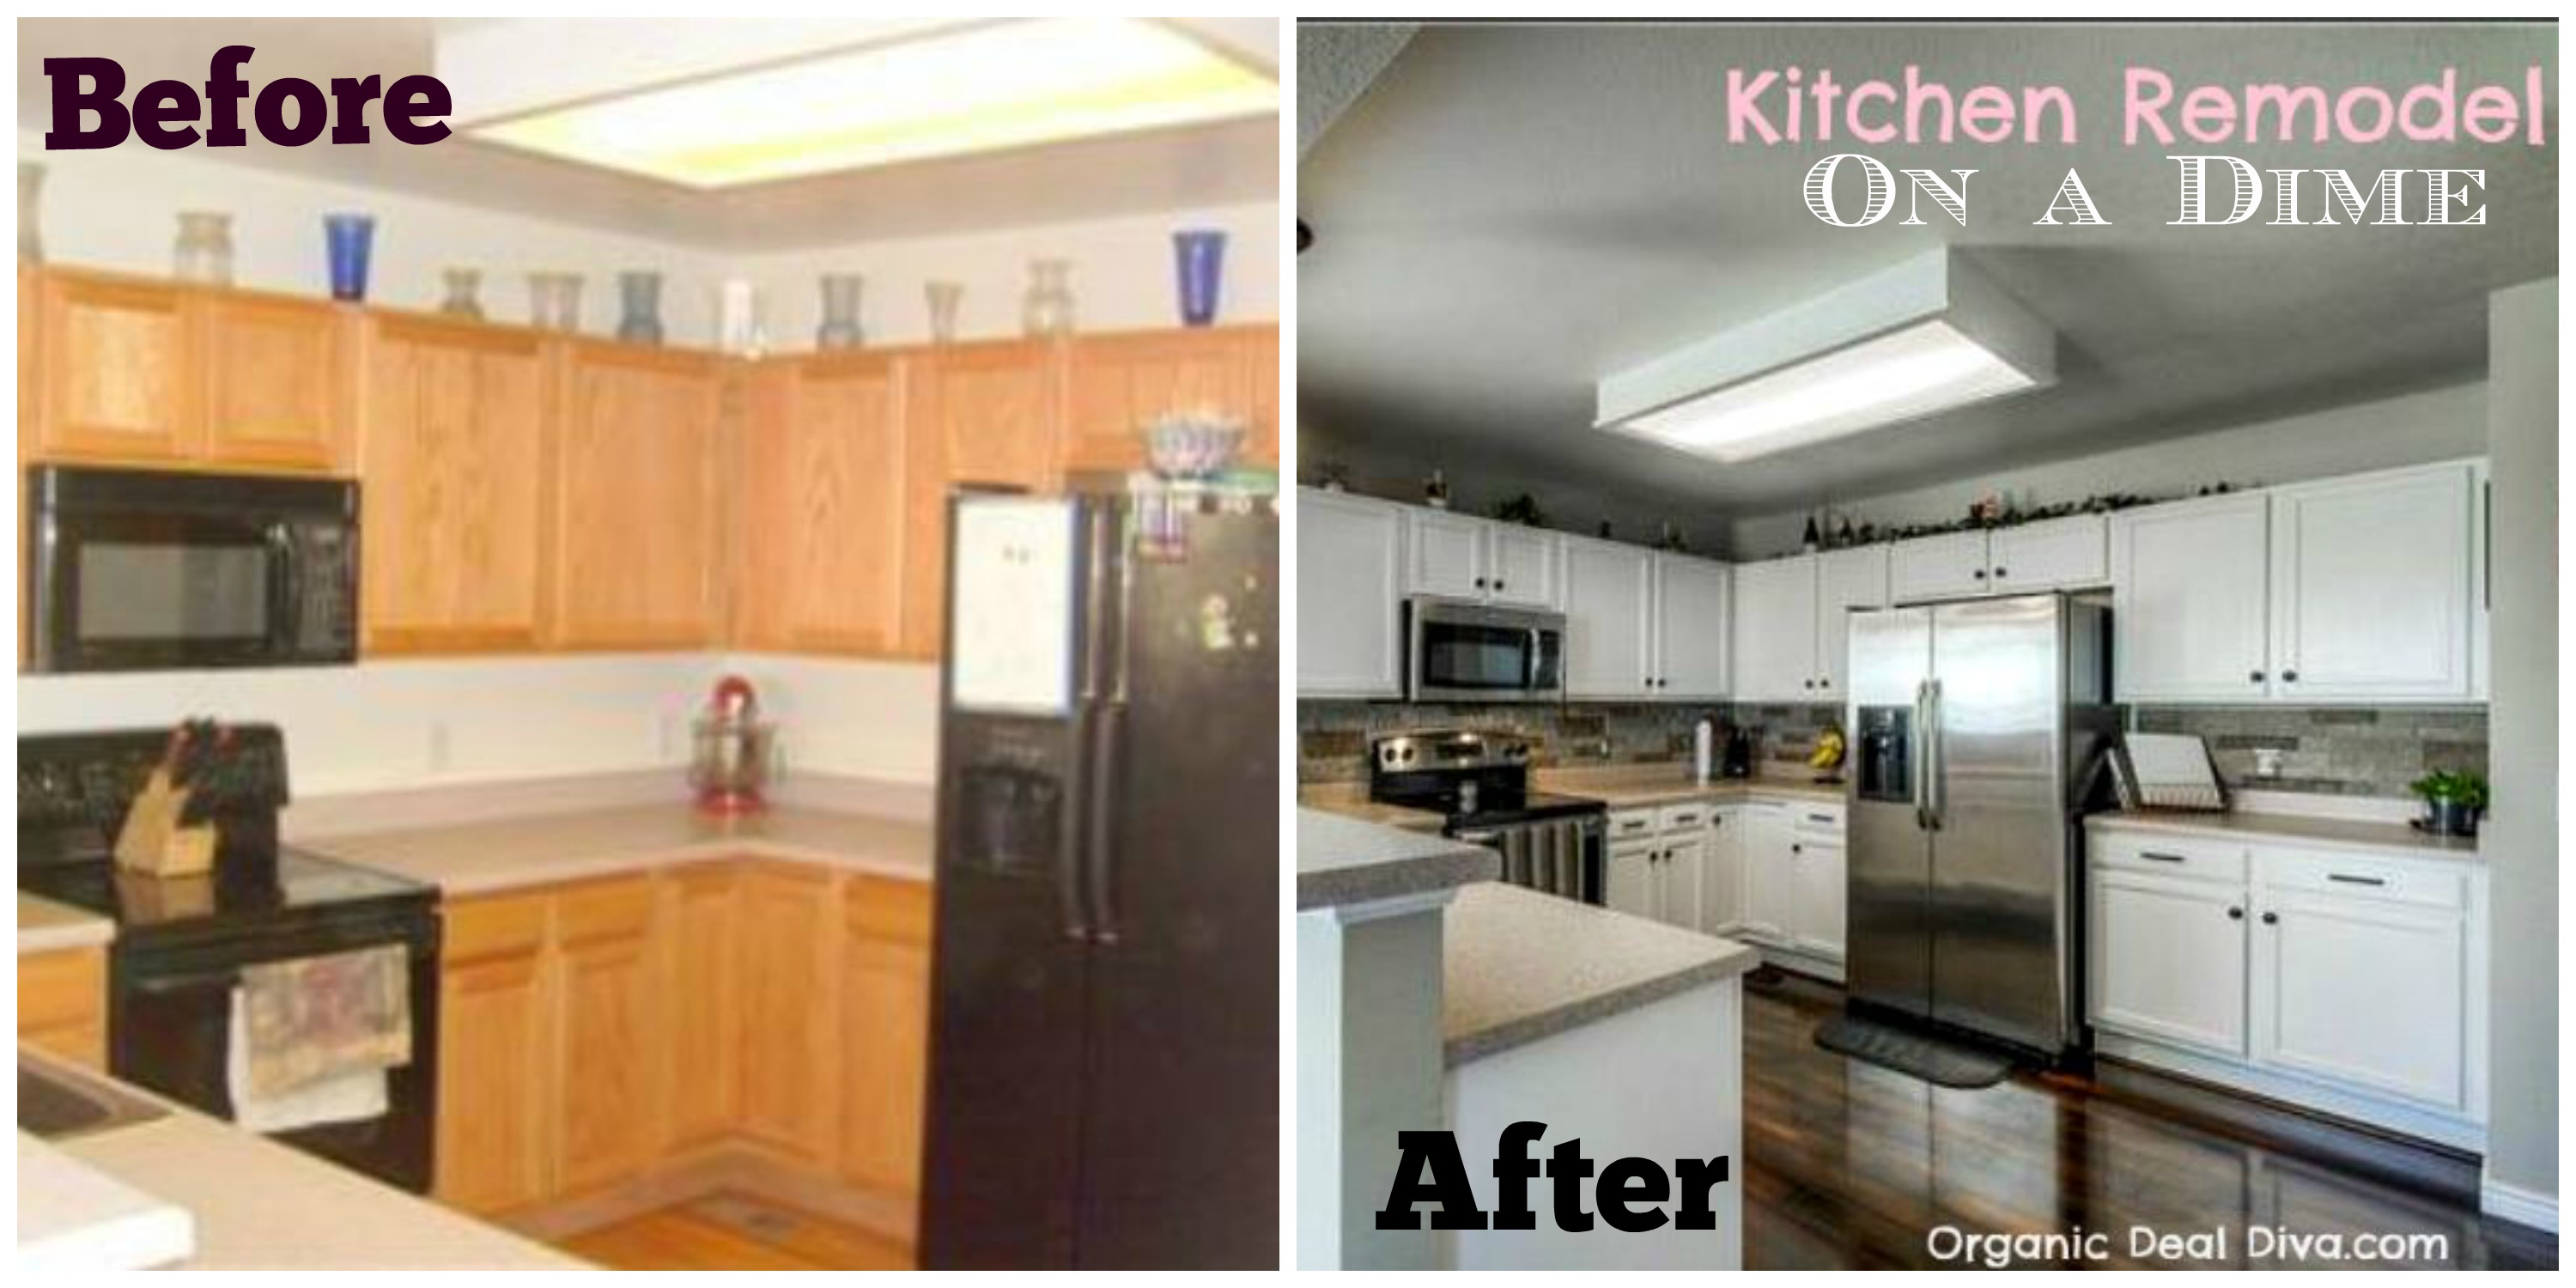 Full kitchen remodel on a budget jessi living lovely for New kitchen on a tight budget